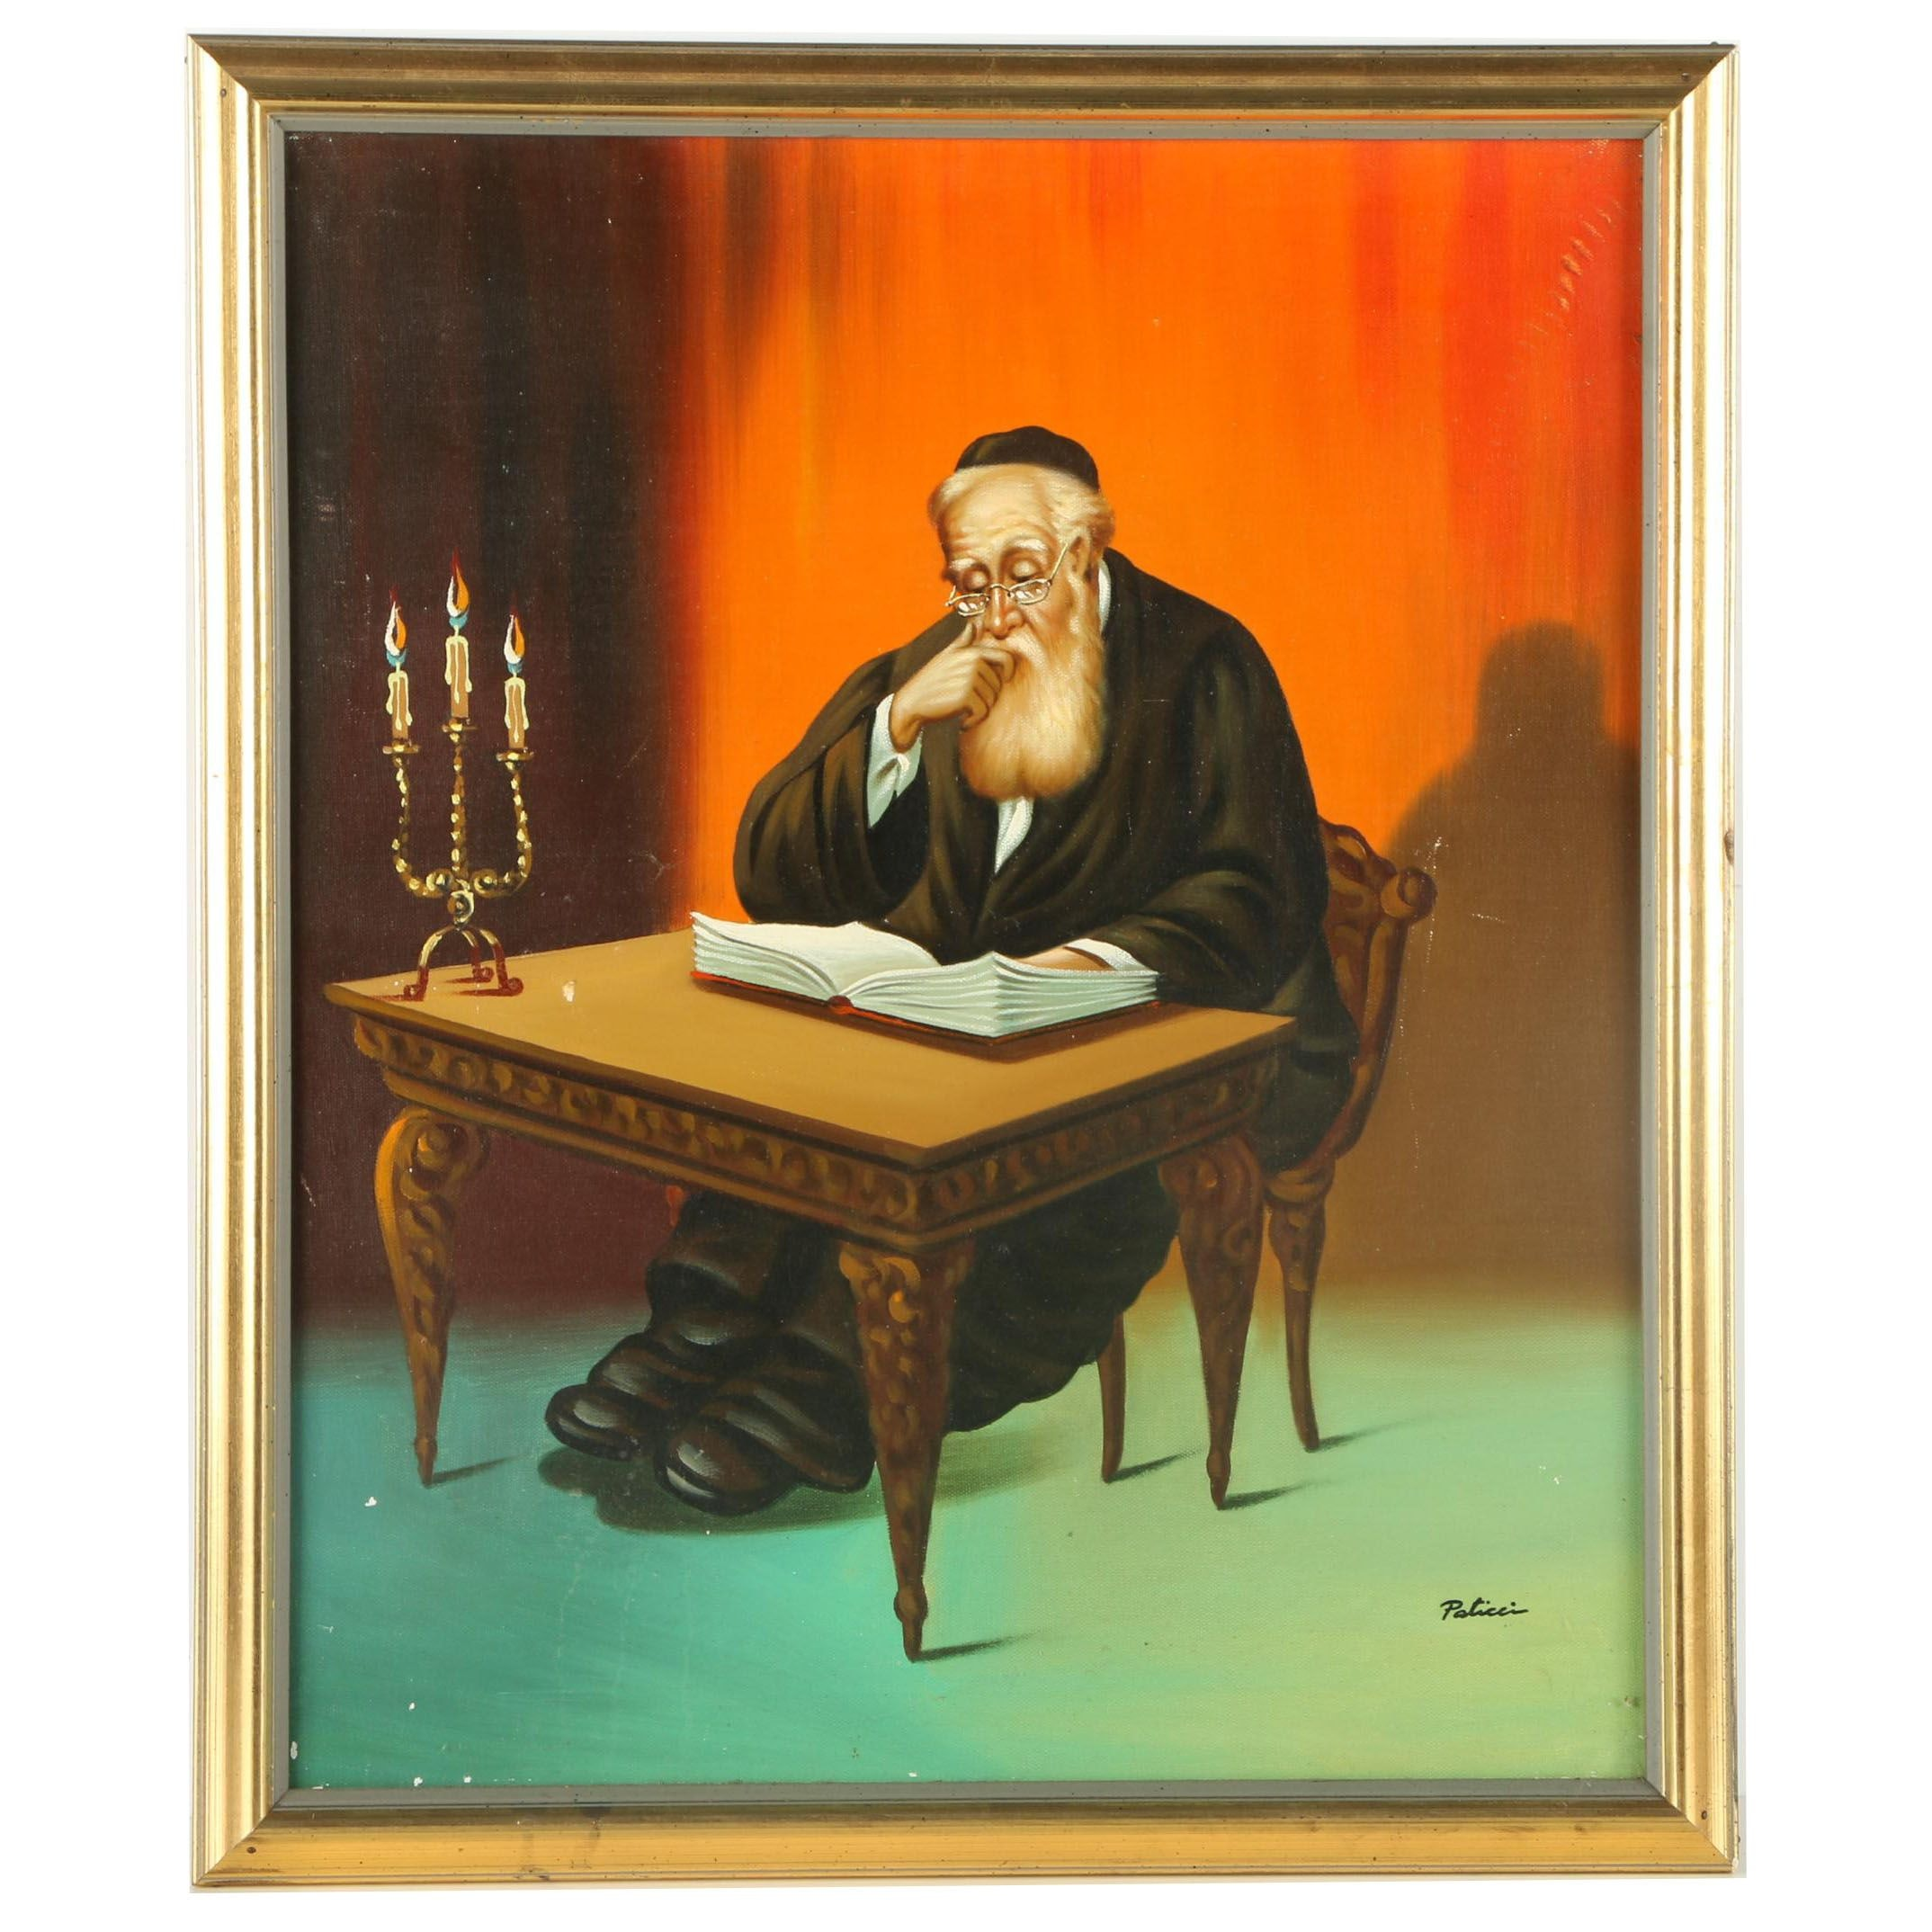 Paticci Oil Painting of a Studying Rabbi